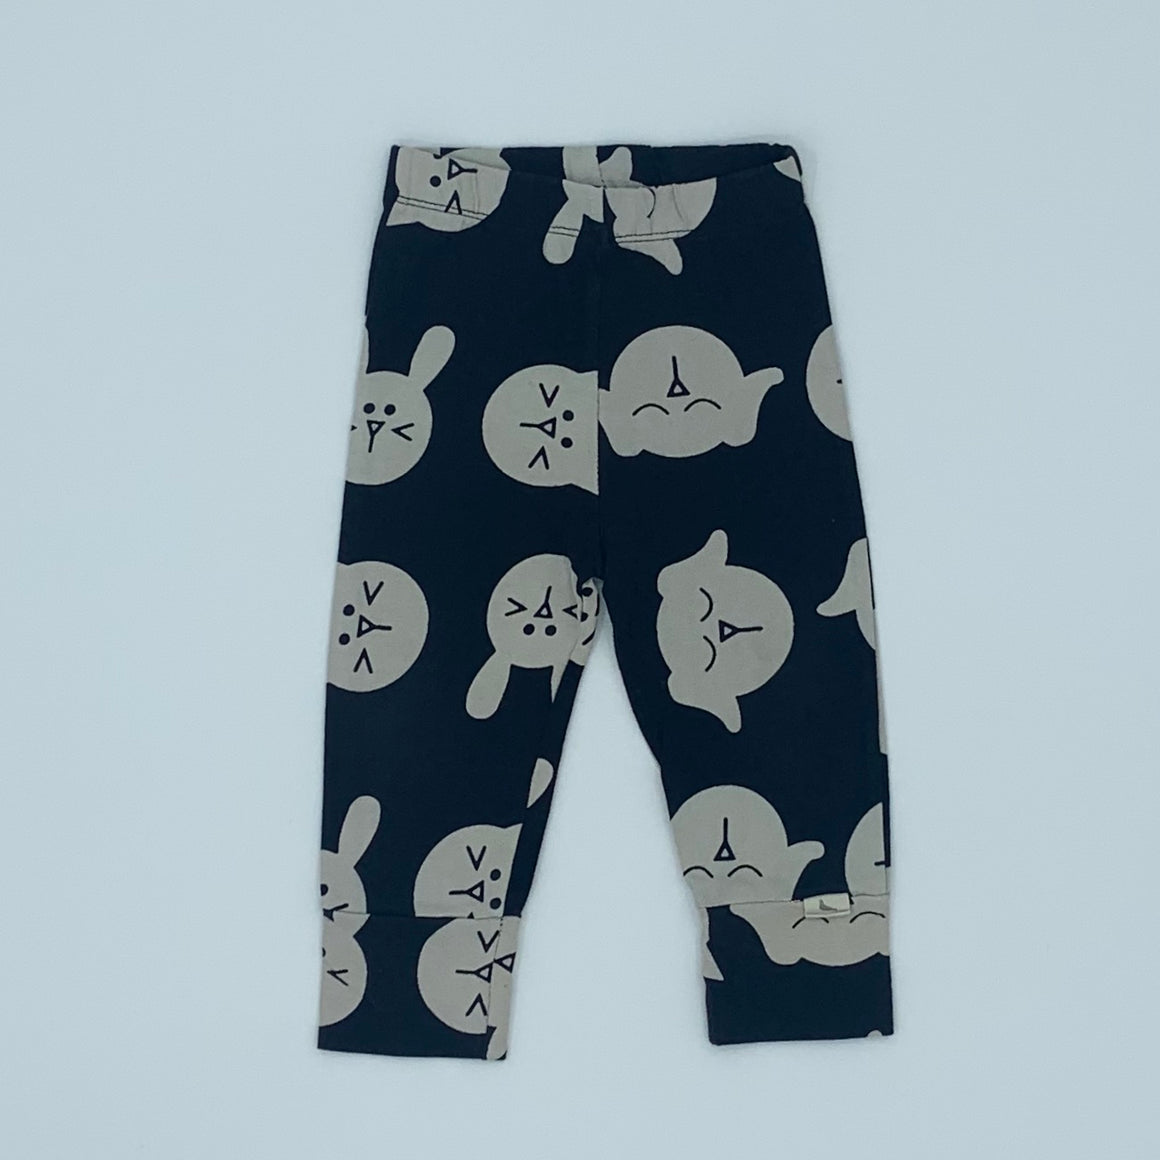 Hardly Worn Turtledove London black dog leggings size 6-12 months